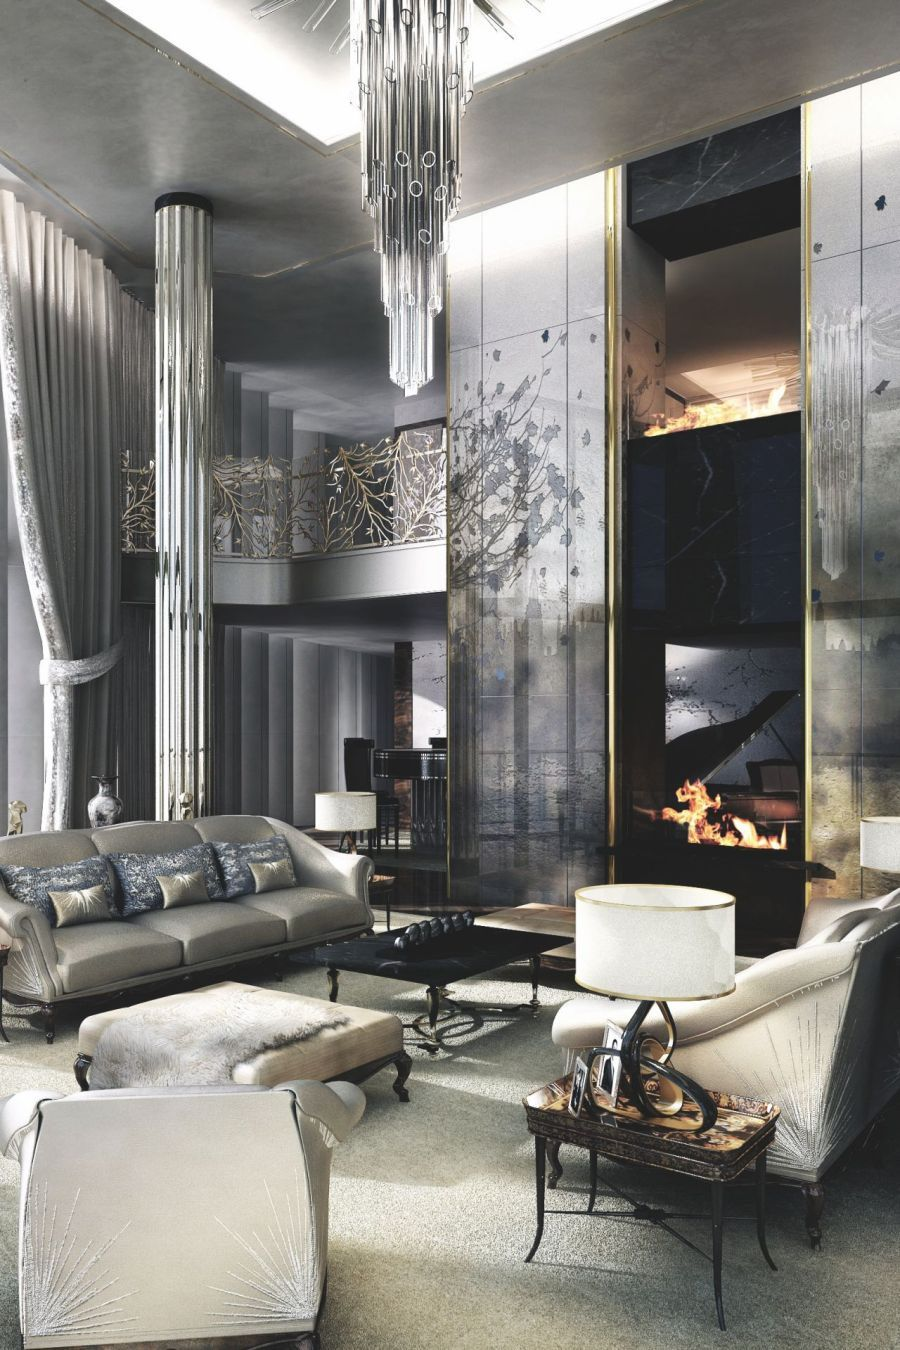 20 Living Room Ideas Modern Contemporary 2021 in 2020